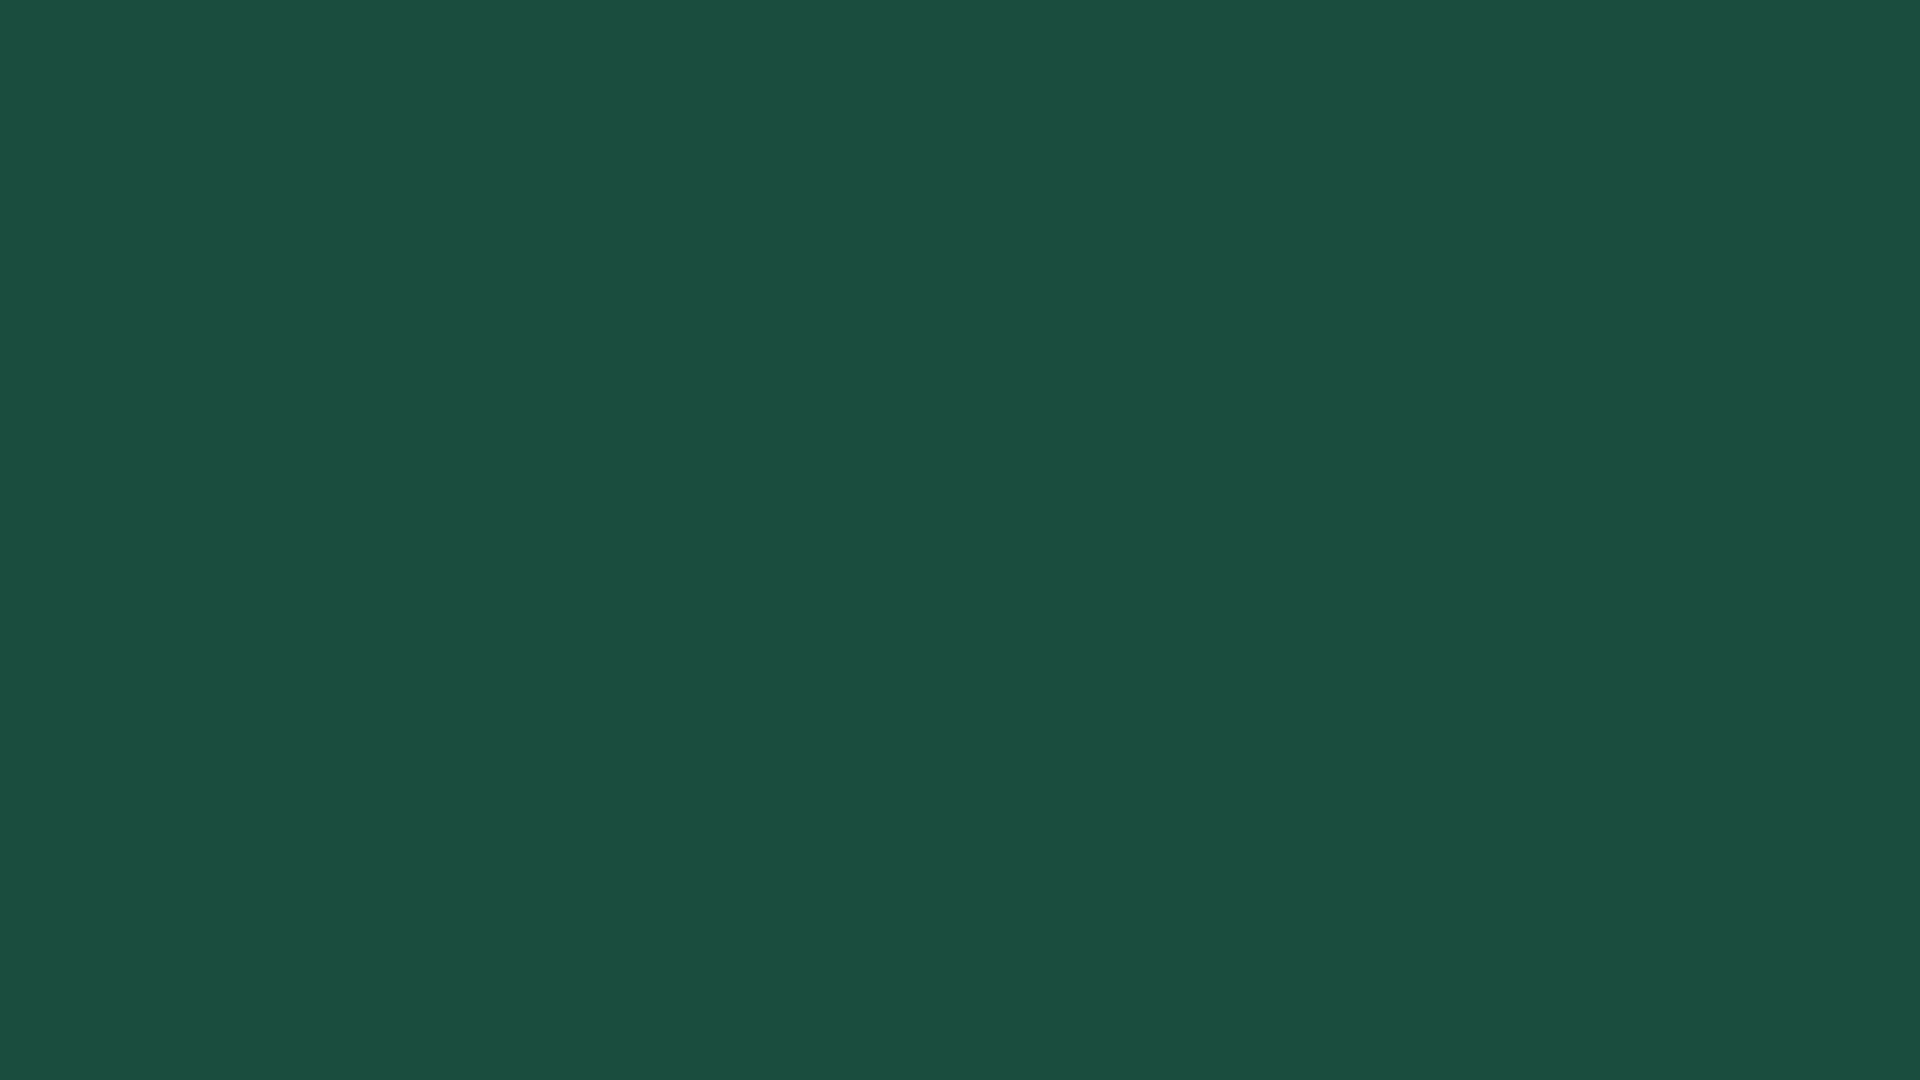 1920x1080 Brunswick Green Solid Color Background